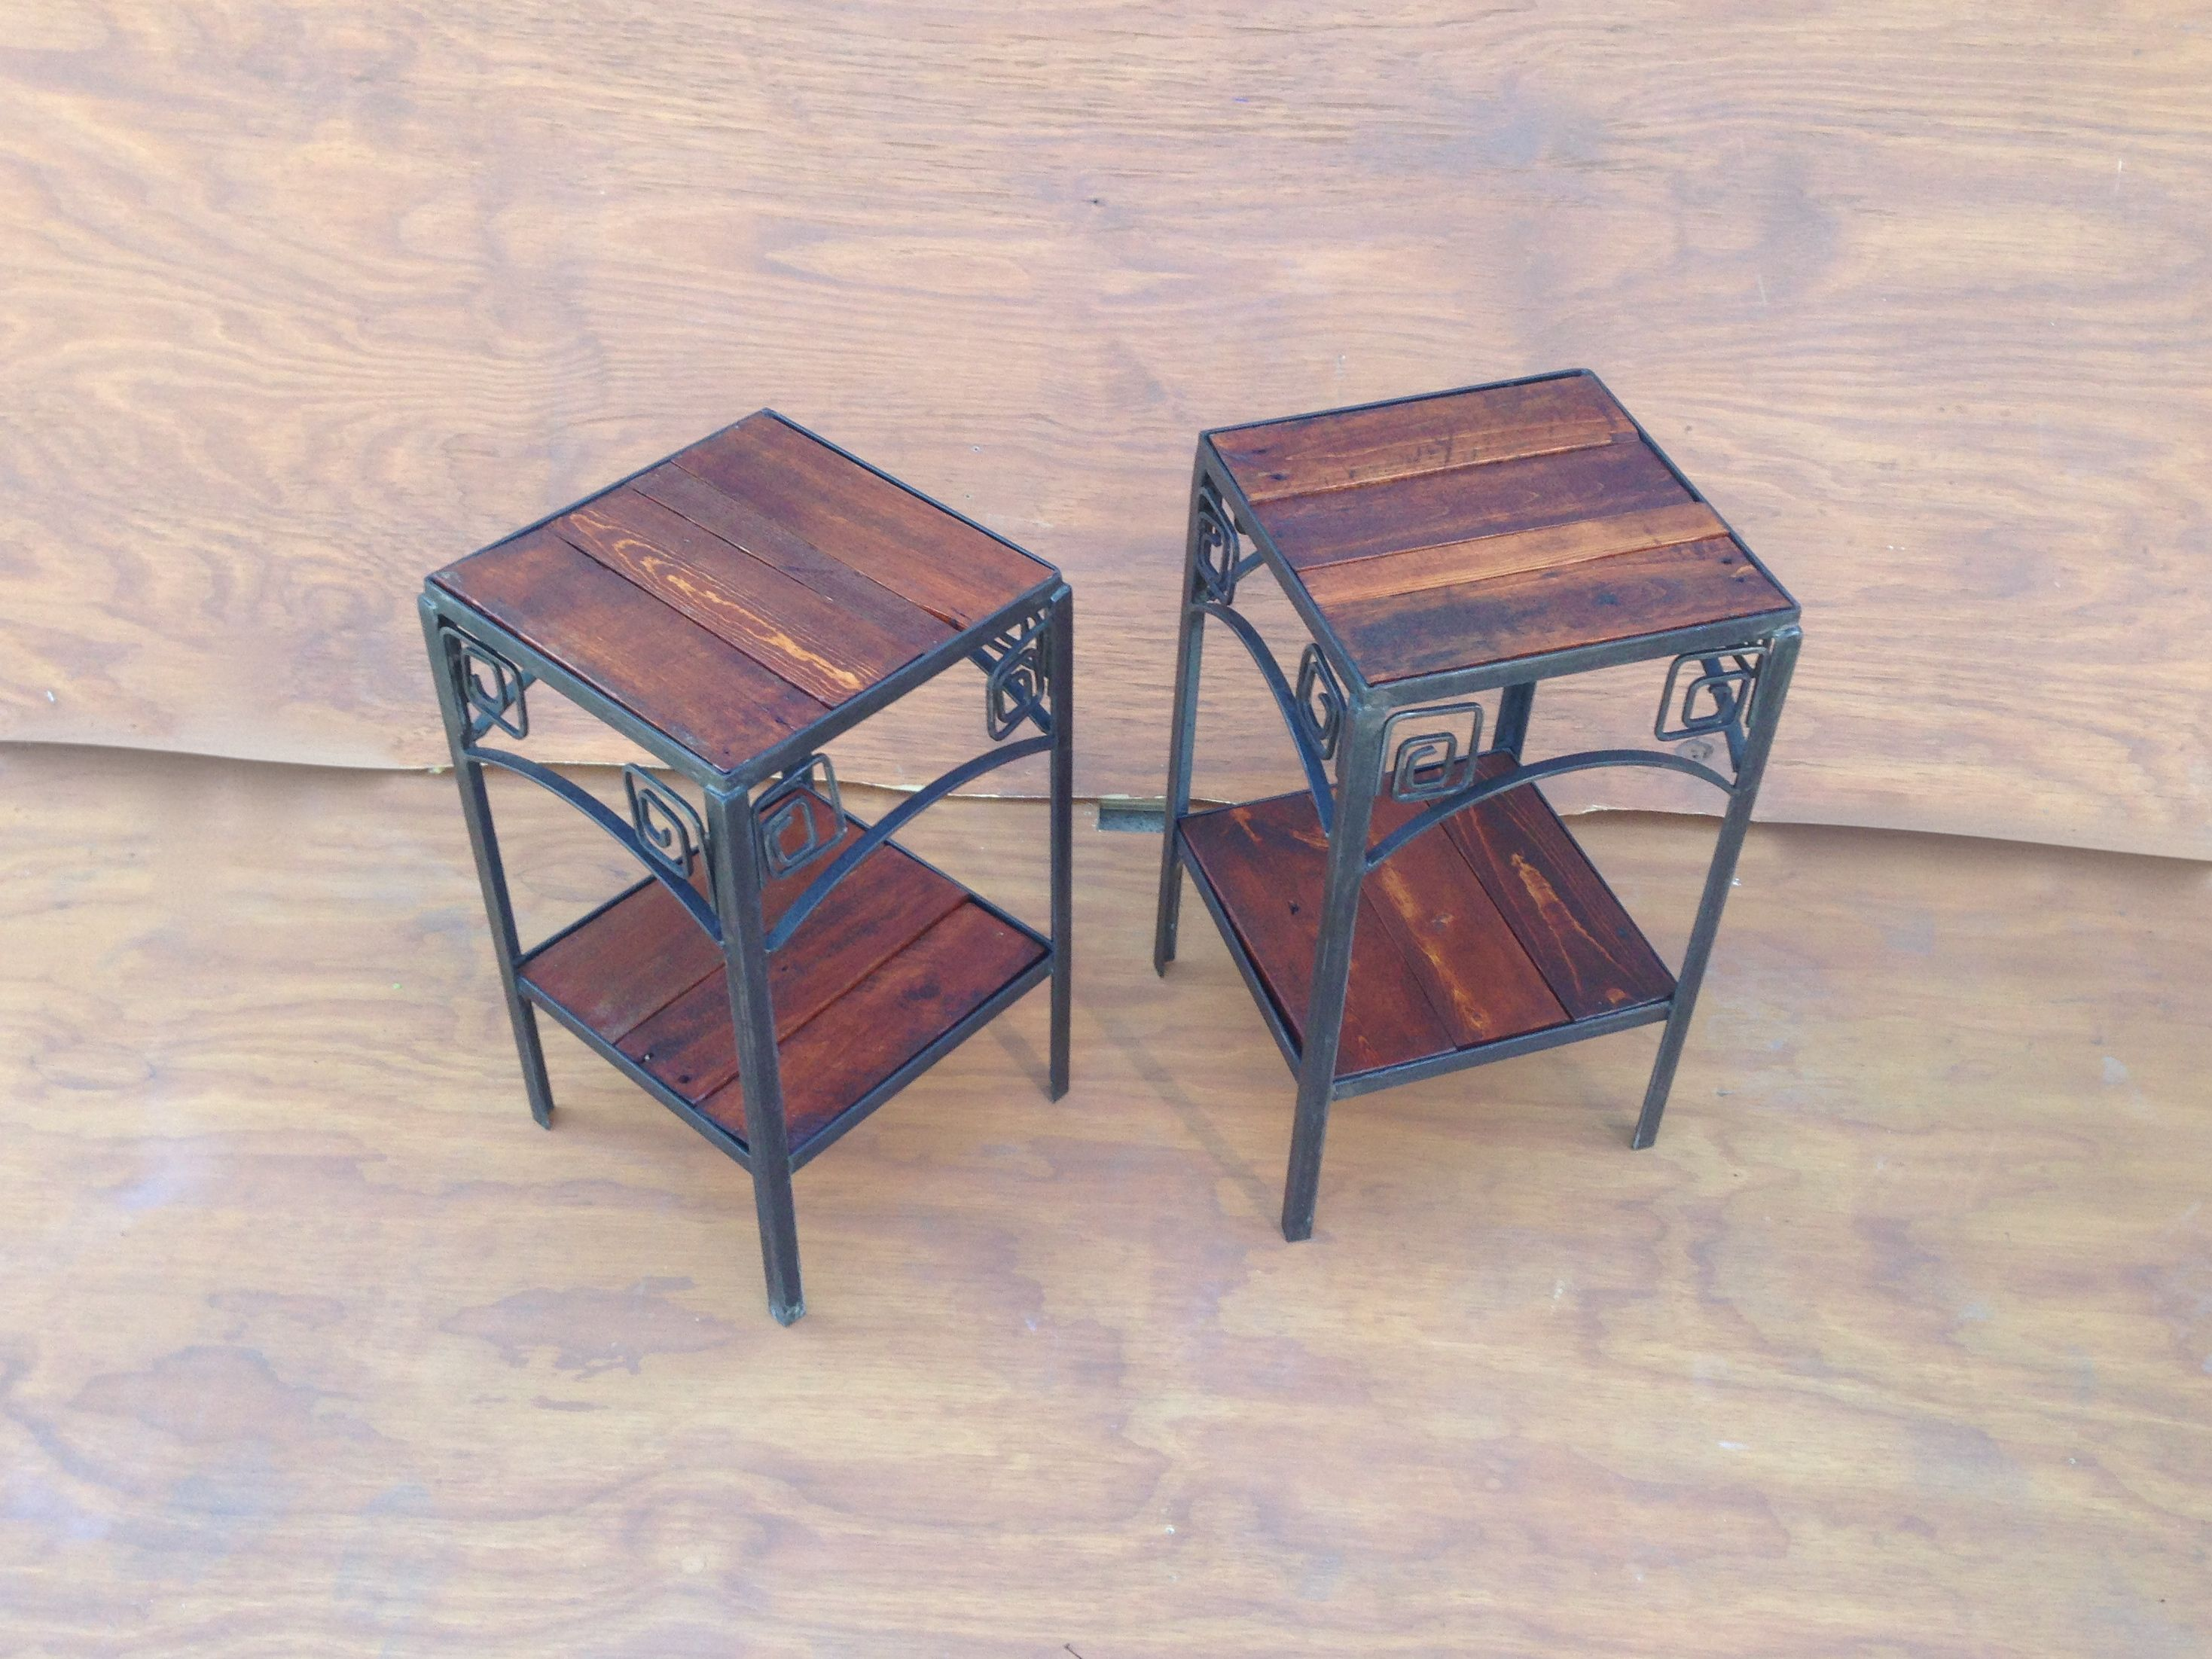 Pair Of Side Tables Fabricated By Steven Brock, Utilizing Pallet Wood  Sanded U0026 Stained,